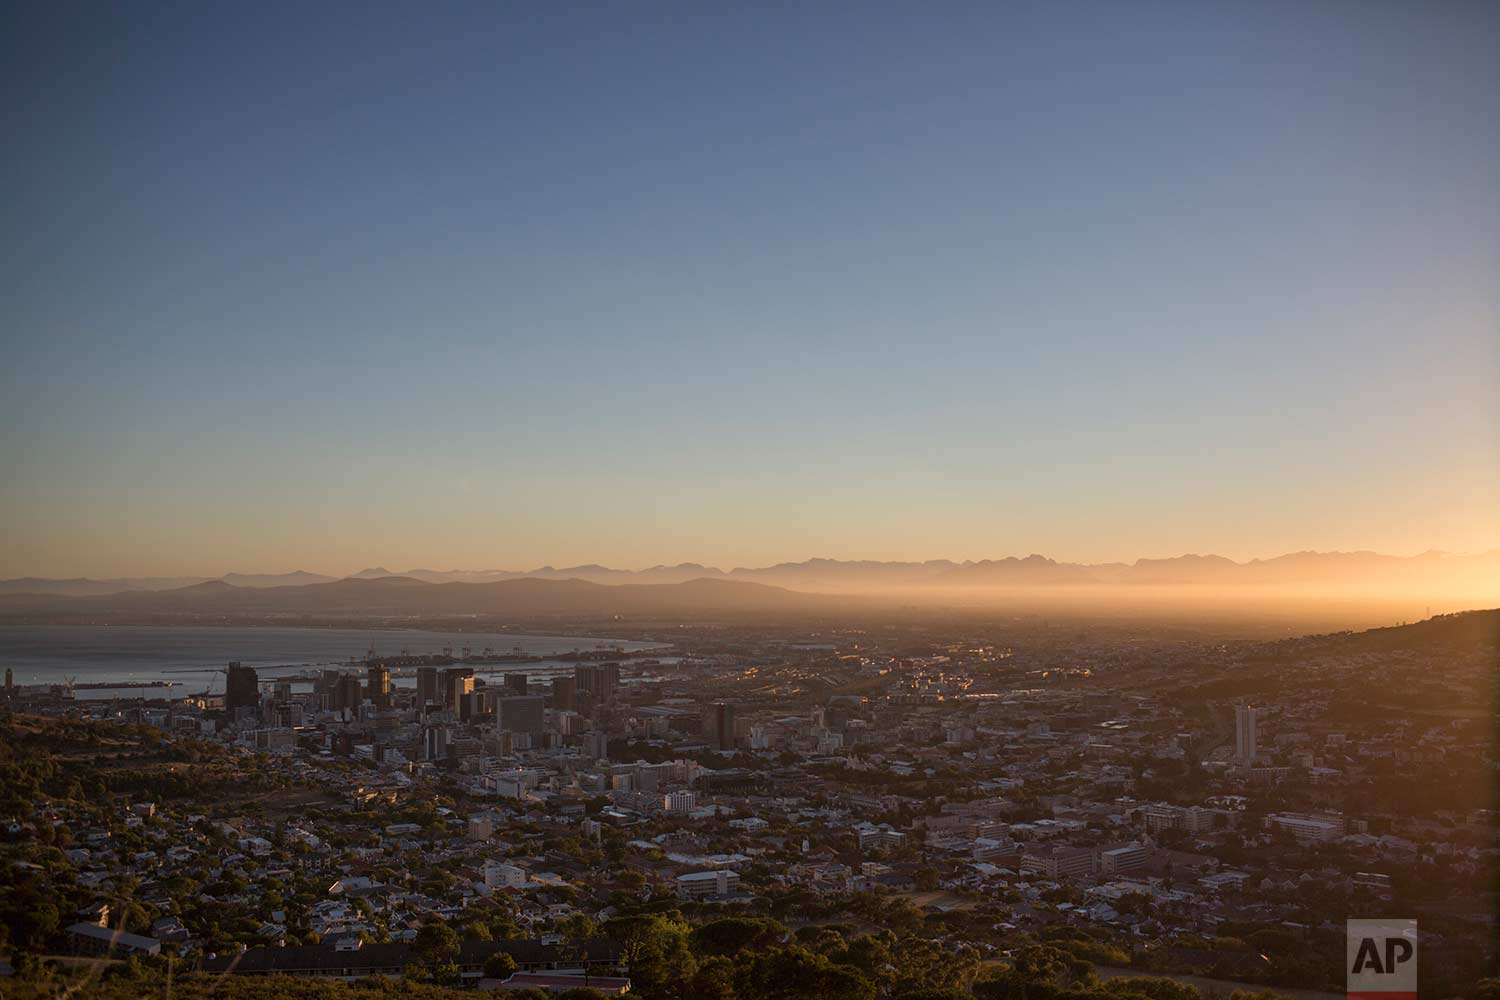 In this Saturday, Feb. 3, 2018, the city of Cape Town in South Africa is seen from a hilltop at sunrise. (AP Photo/Bram Janssen)